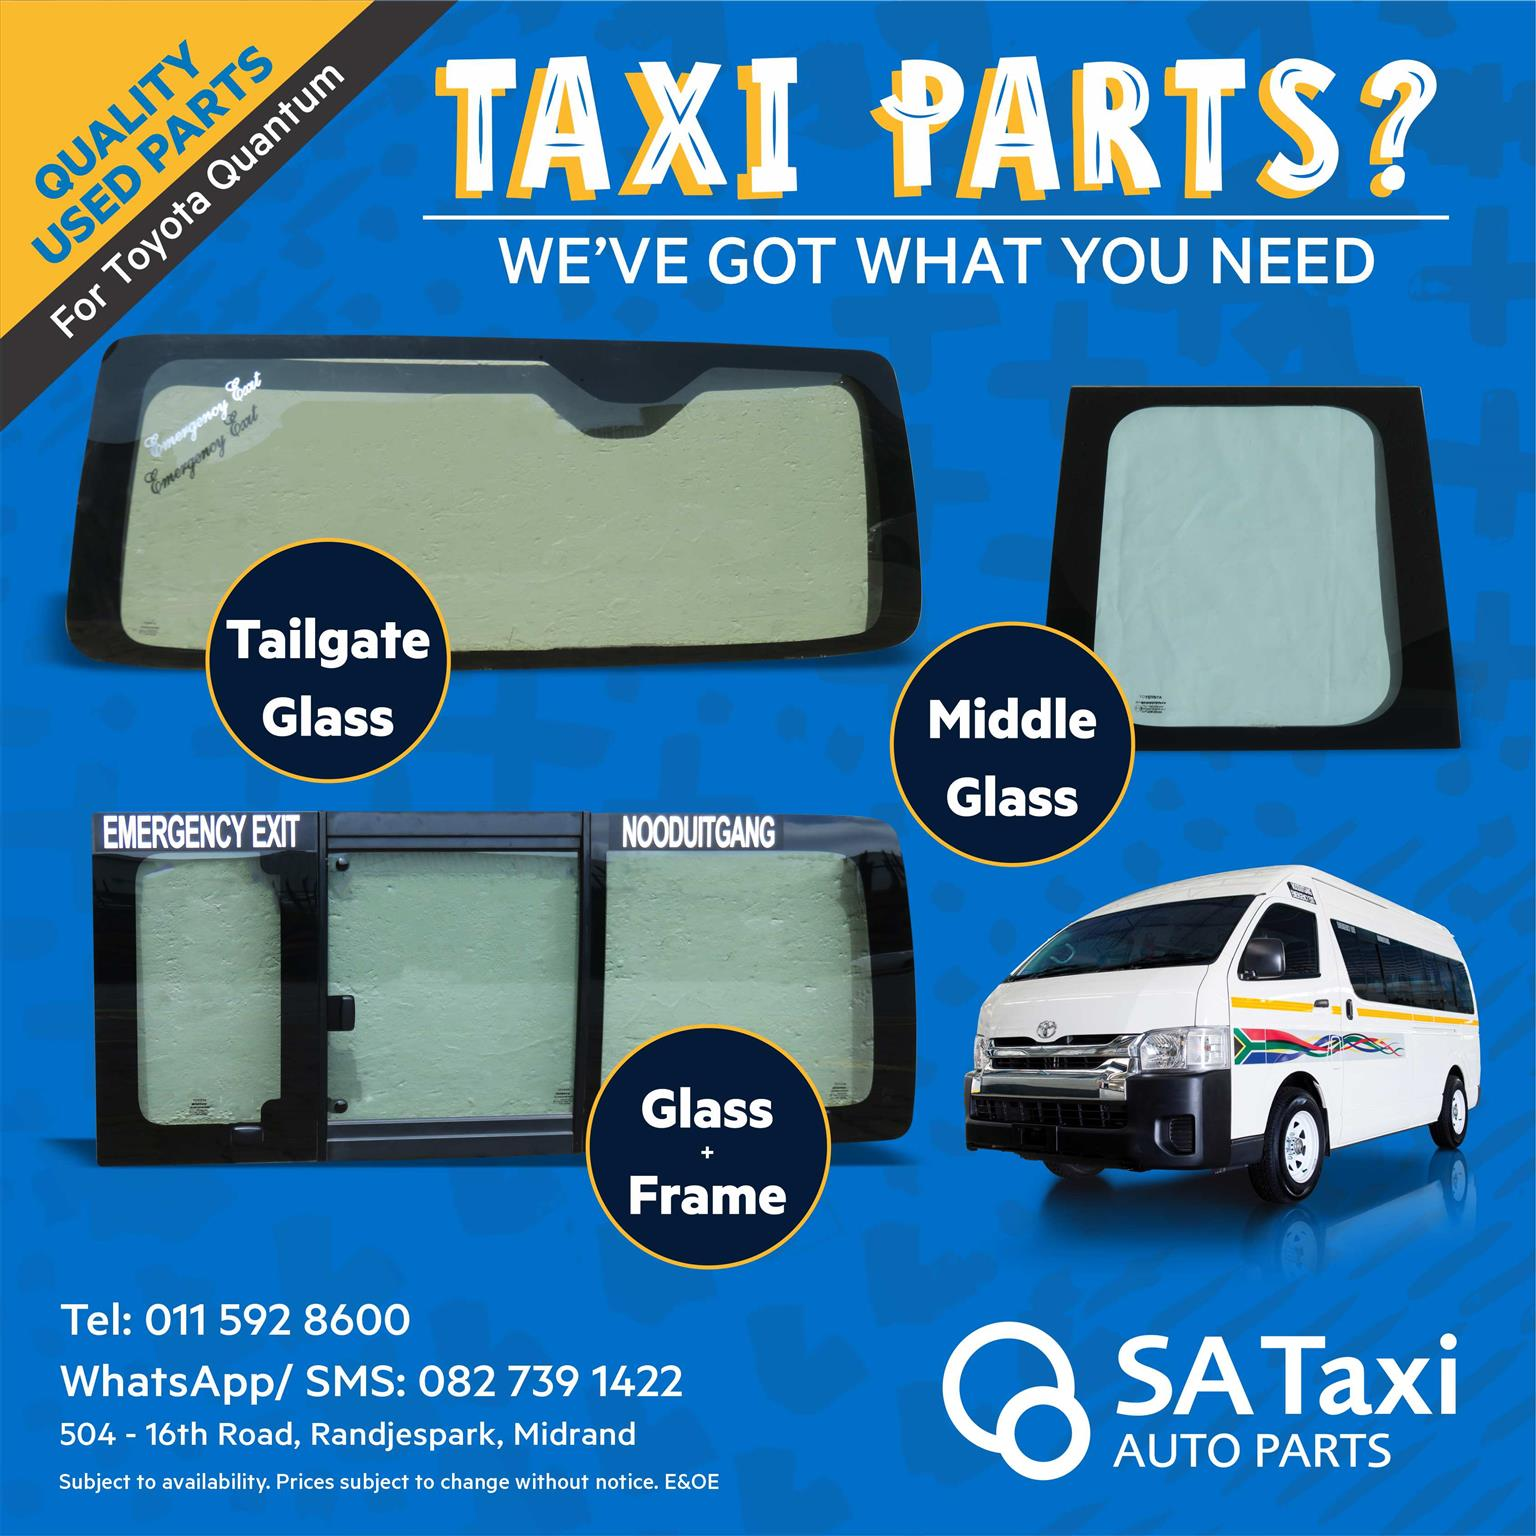 Taxi Parts? We've got what you need. SA Taxi Auto Parts quality NEW and USED spares